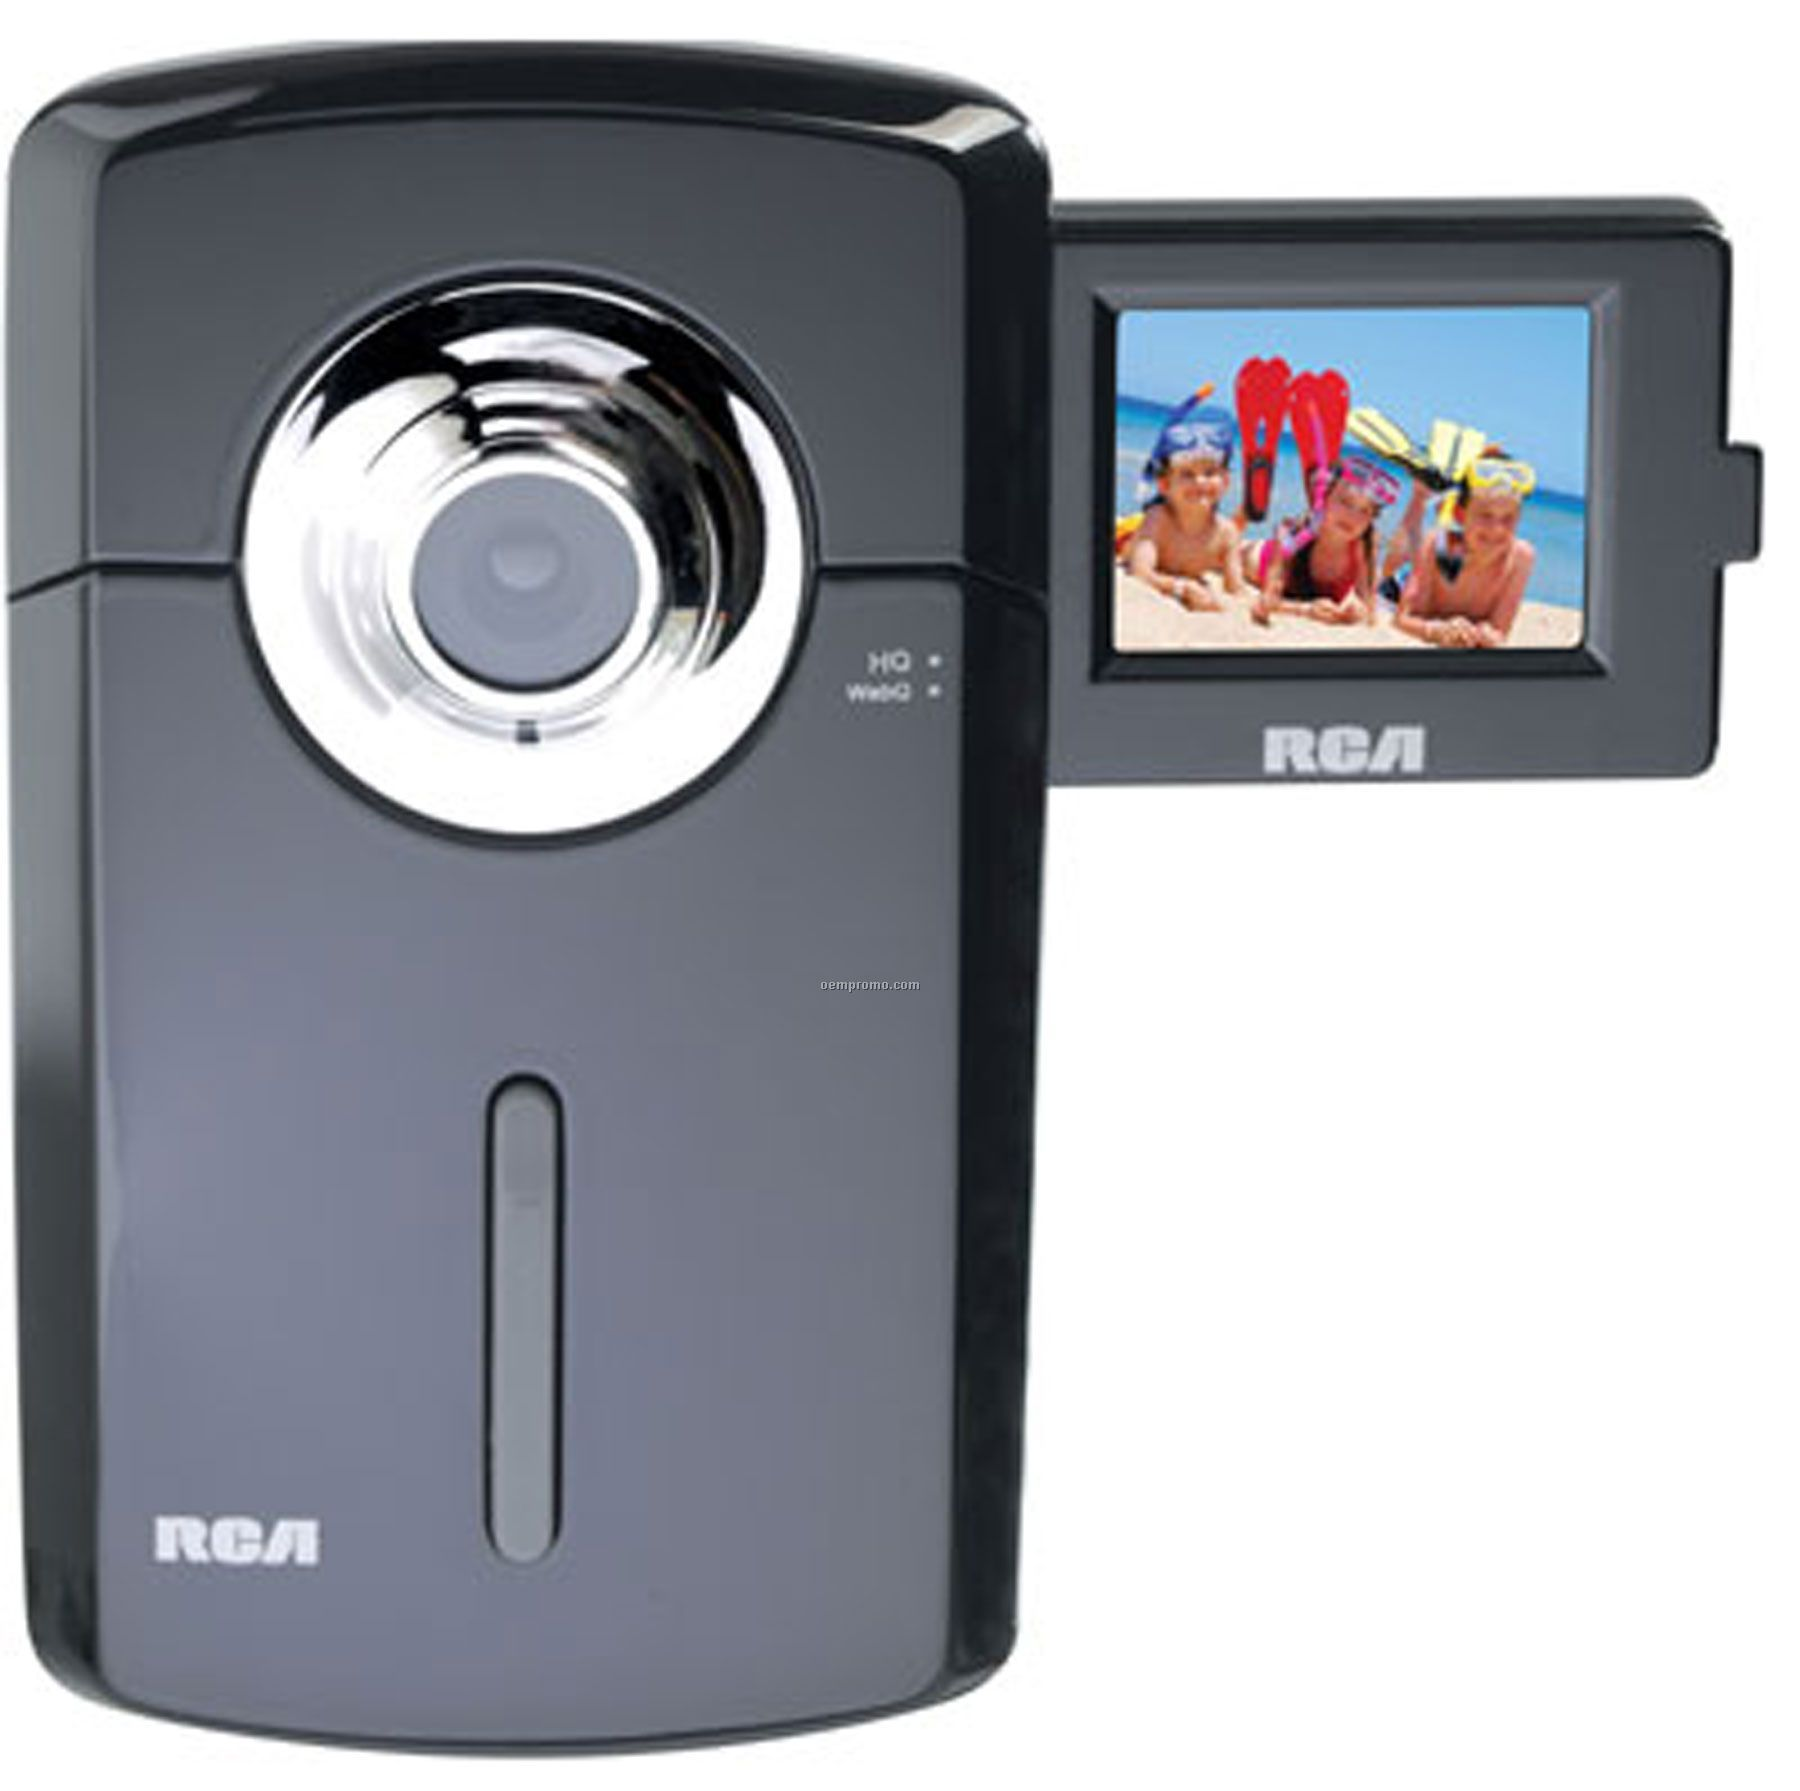 Rca Ez1000 Small Wonder Point And Shoot Camcorder